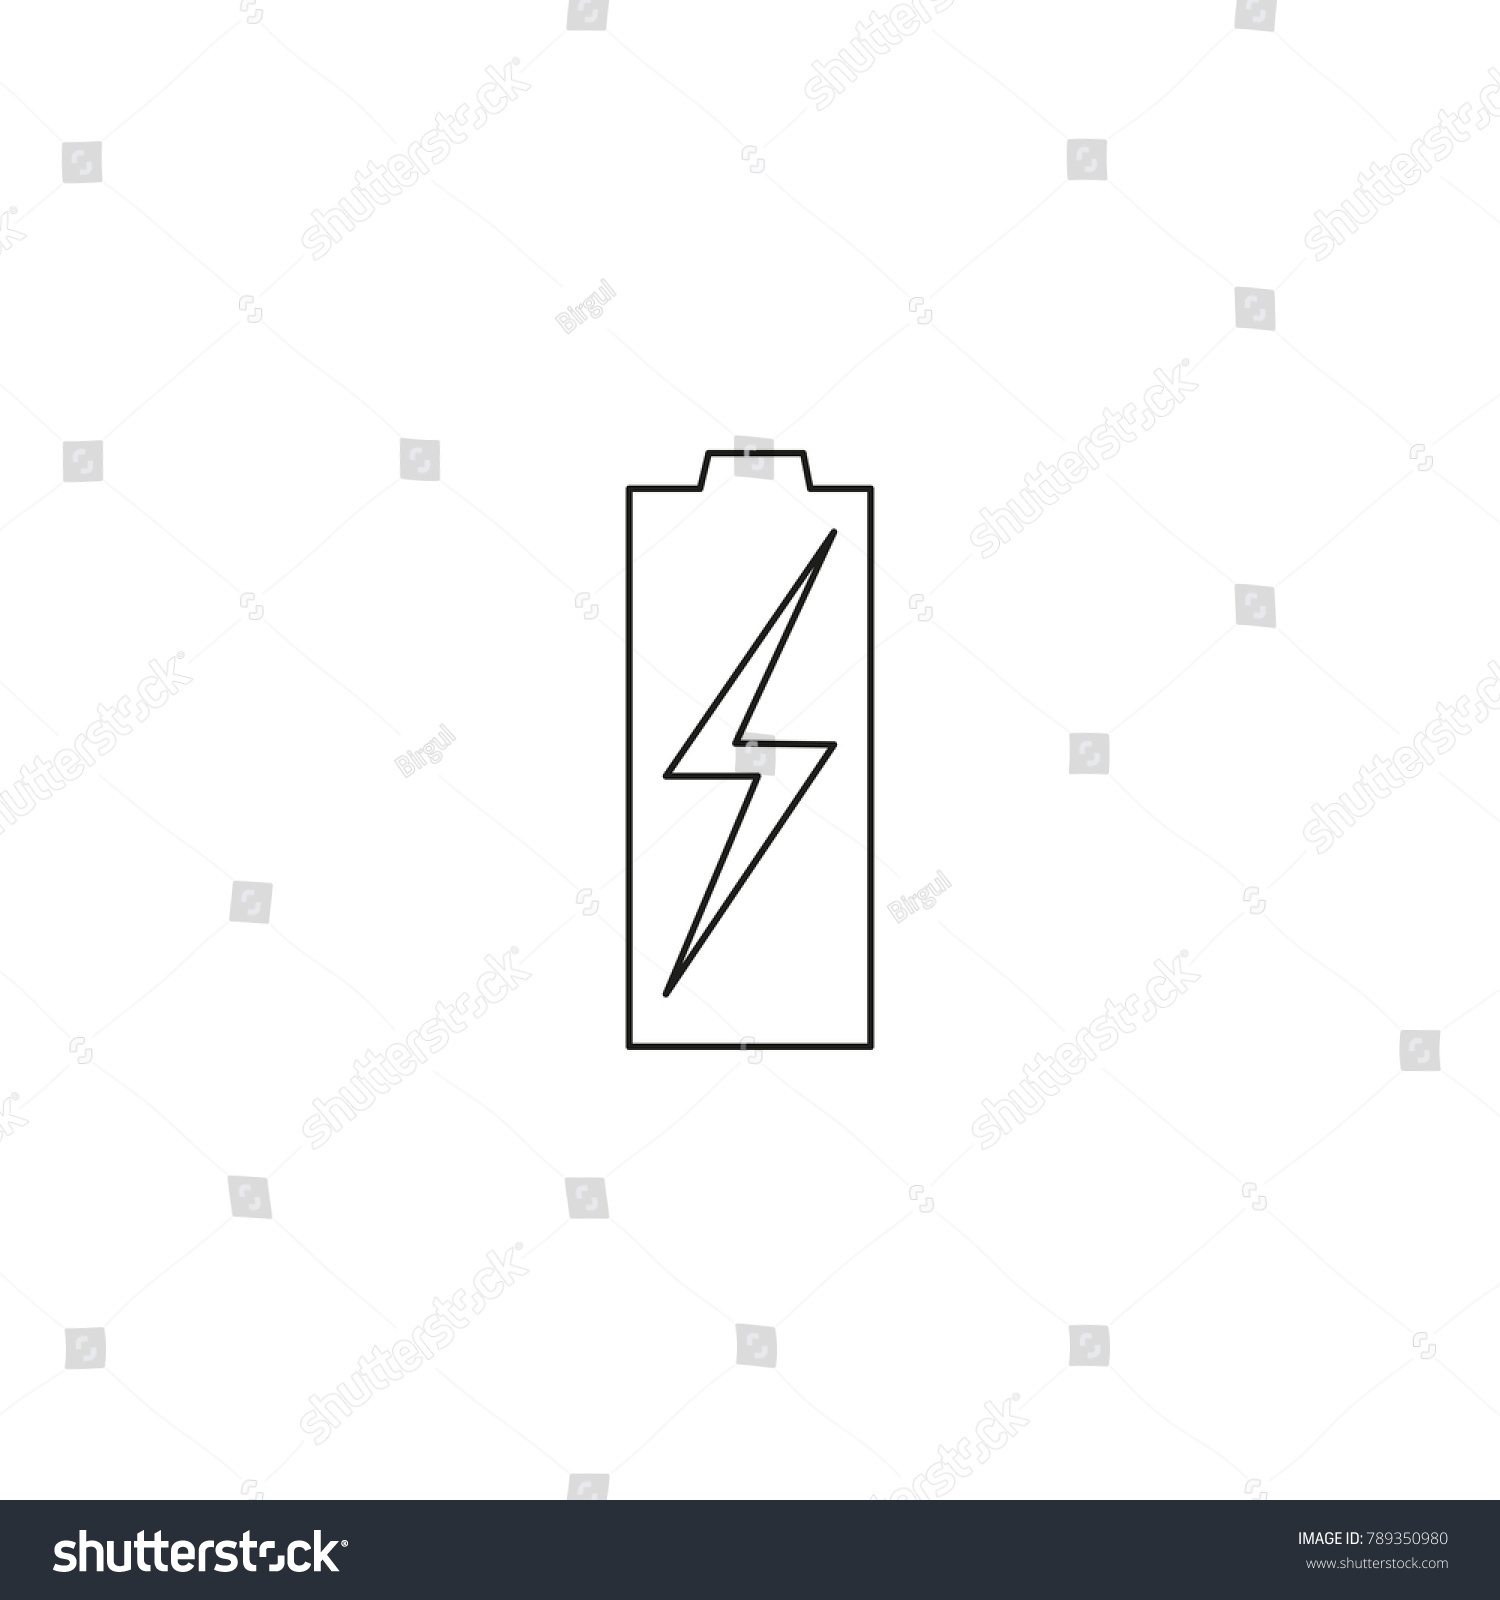 Fine single cell battery symbol gallery wiring diagram ideas comfortable single cell battery symbol gallery simple wiring biocorpaavc Images